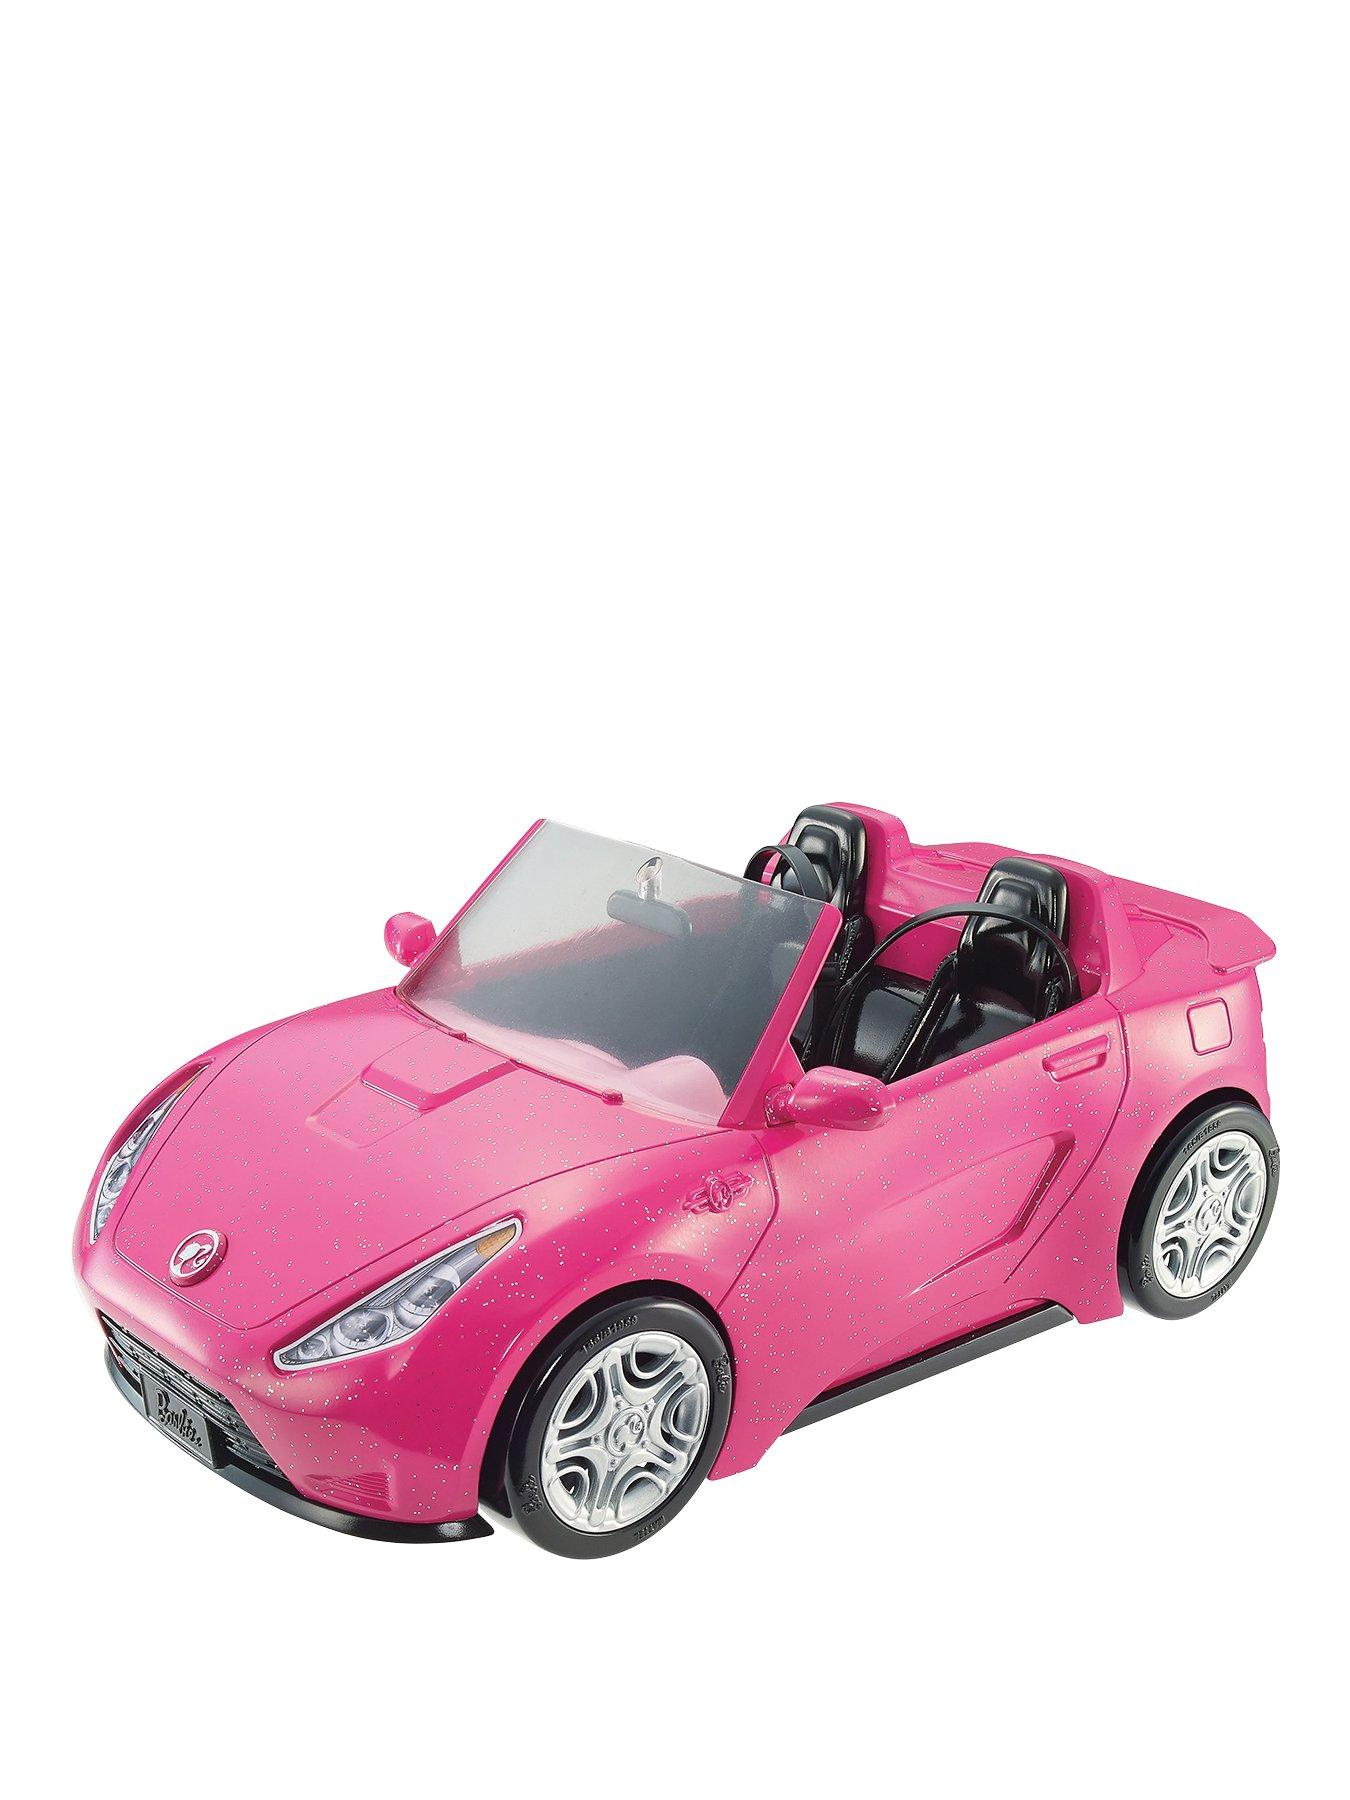 Compare prices for Barbie Glam Convertible